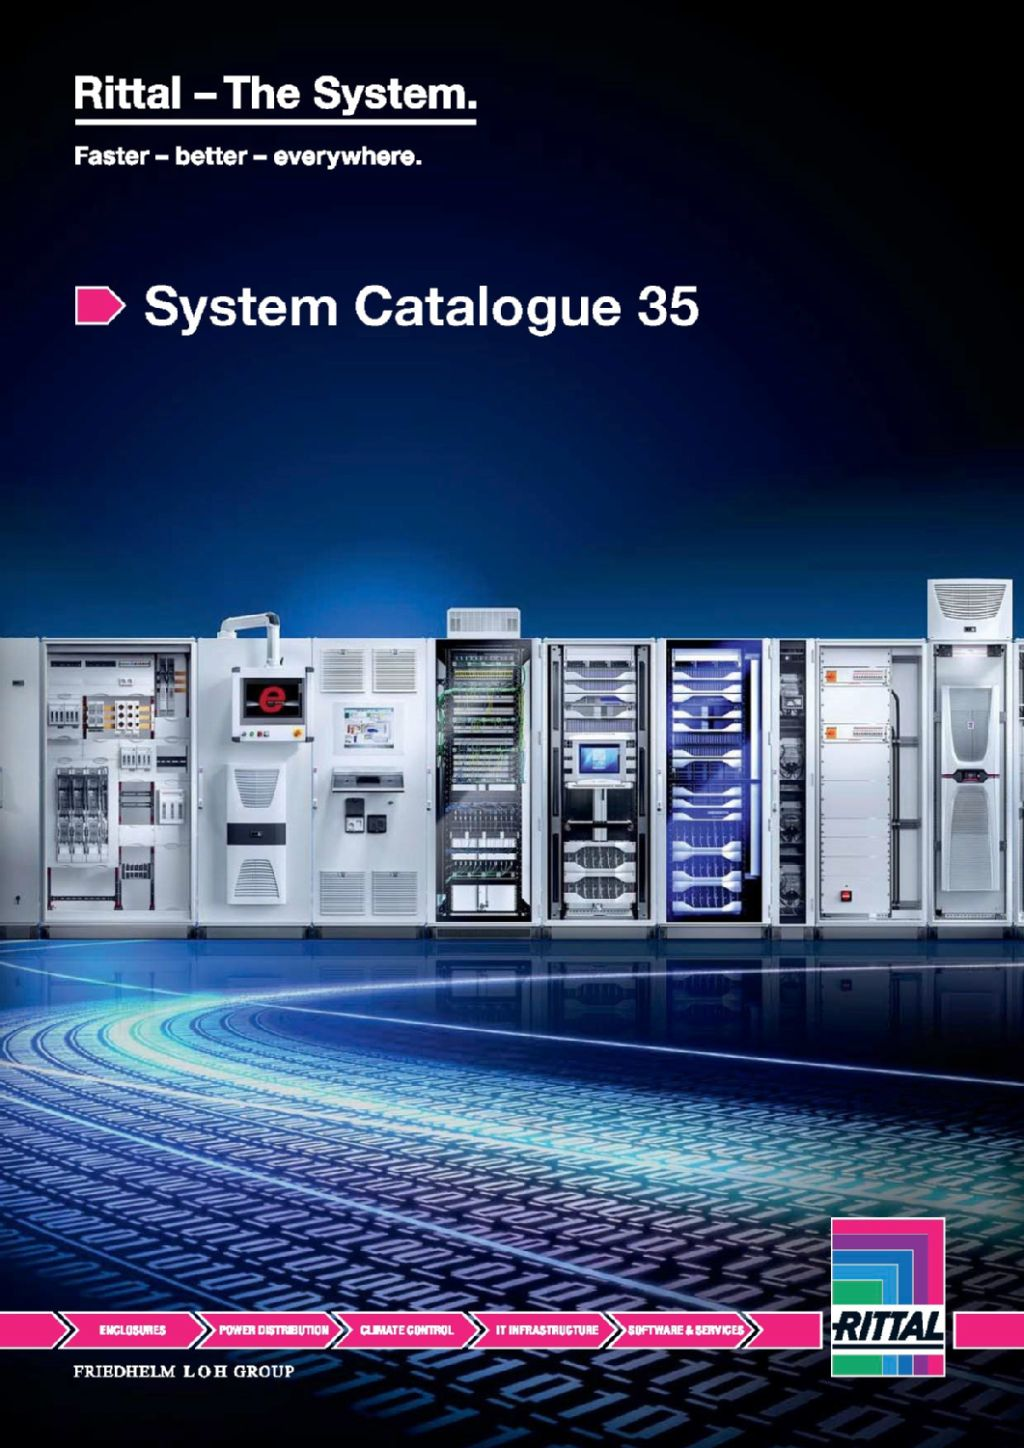 Rittal Publishes New System Catalogue